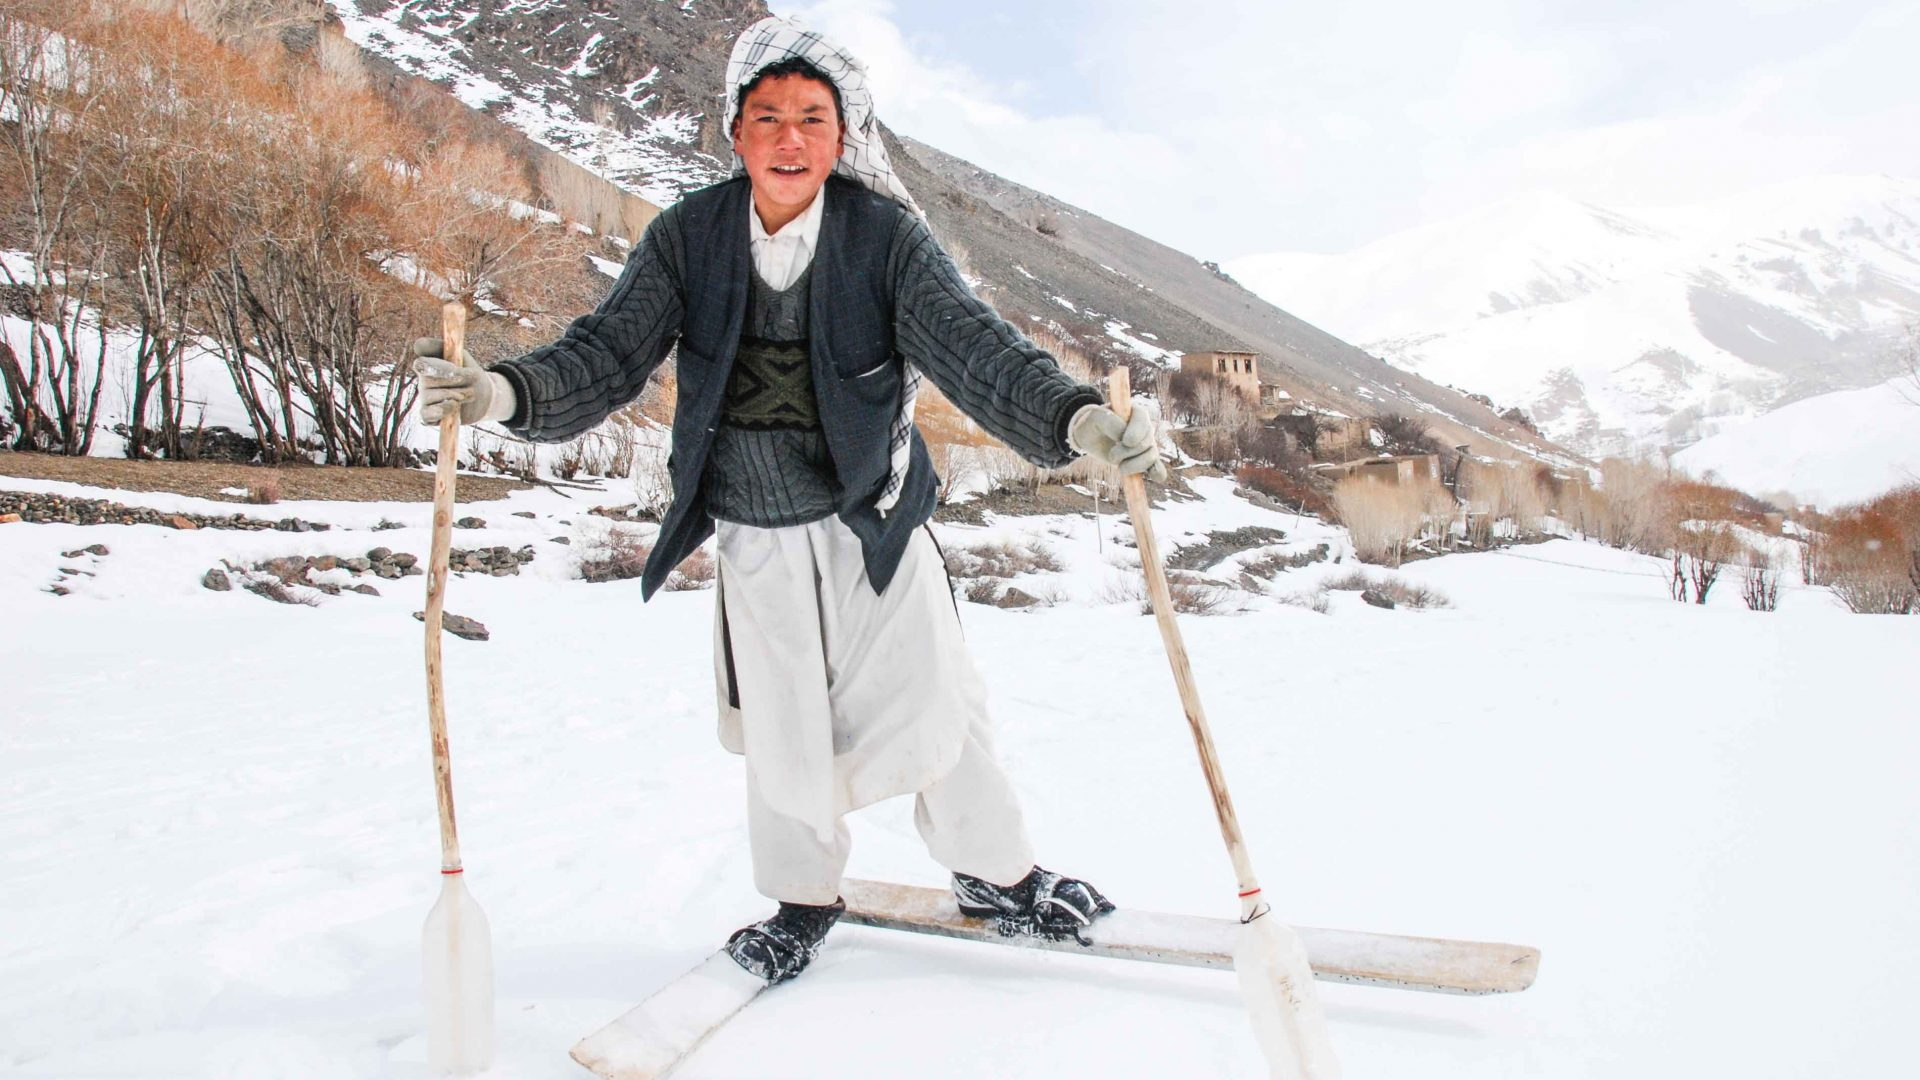 A young Afghani boy makes his way up one of the steep inclines.